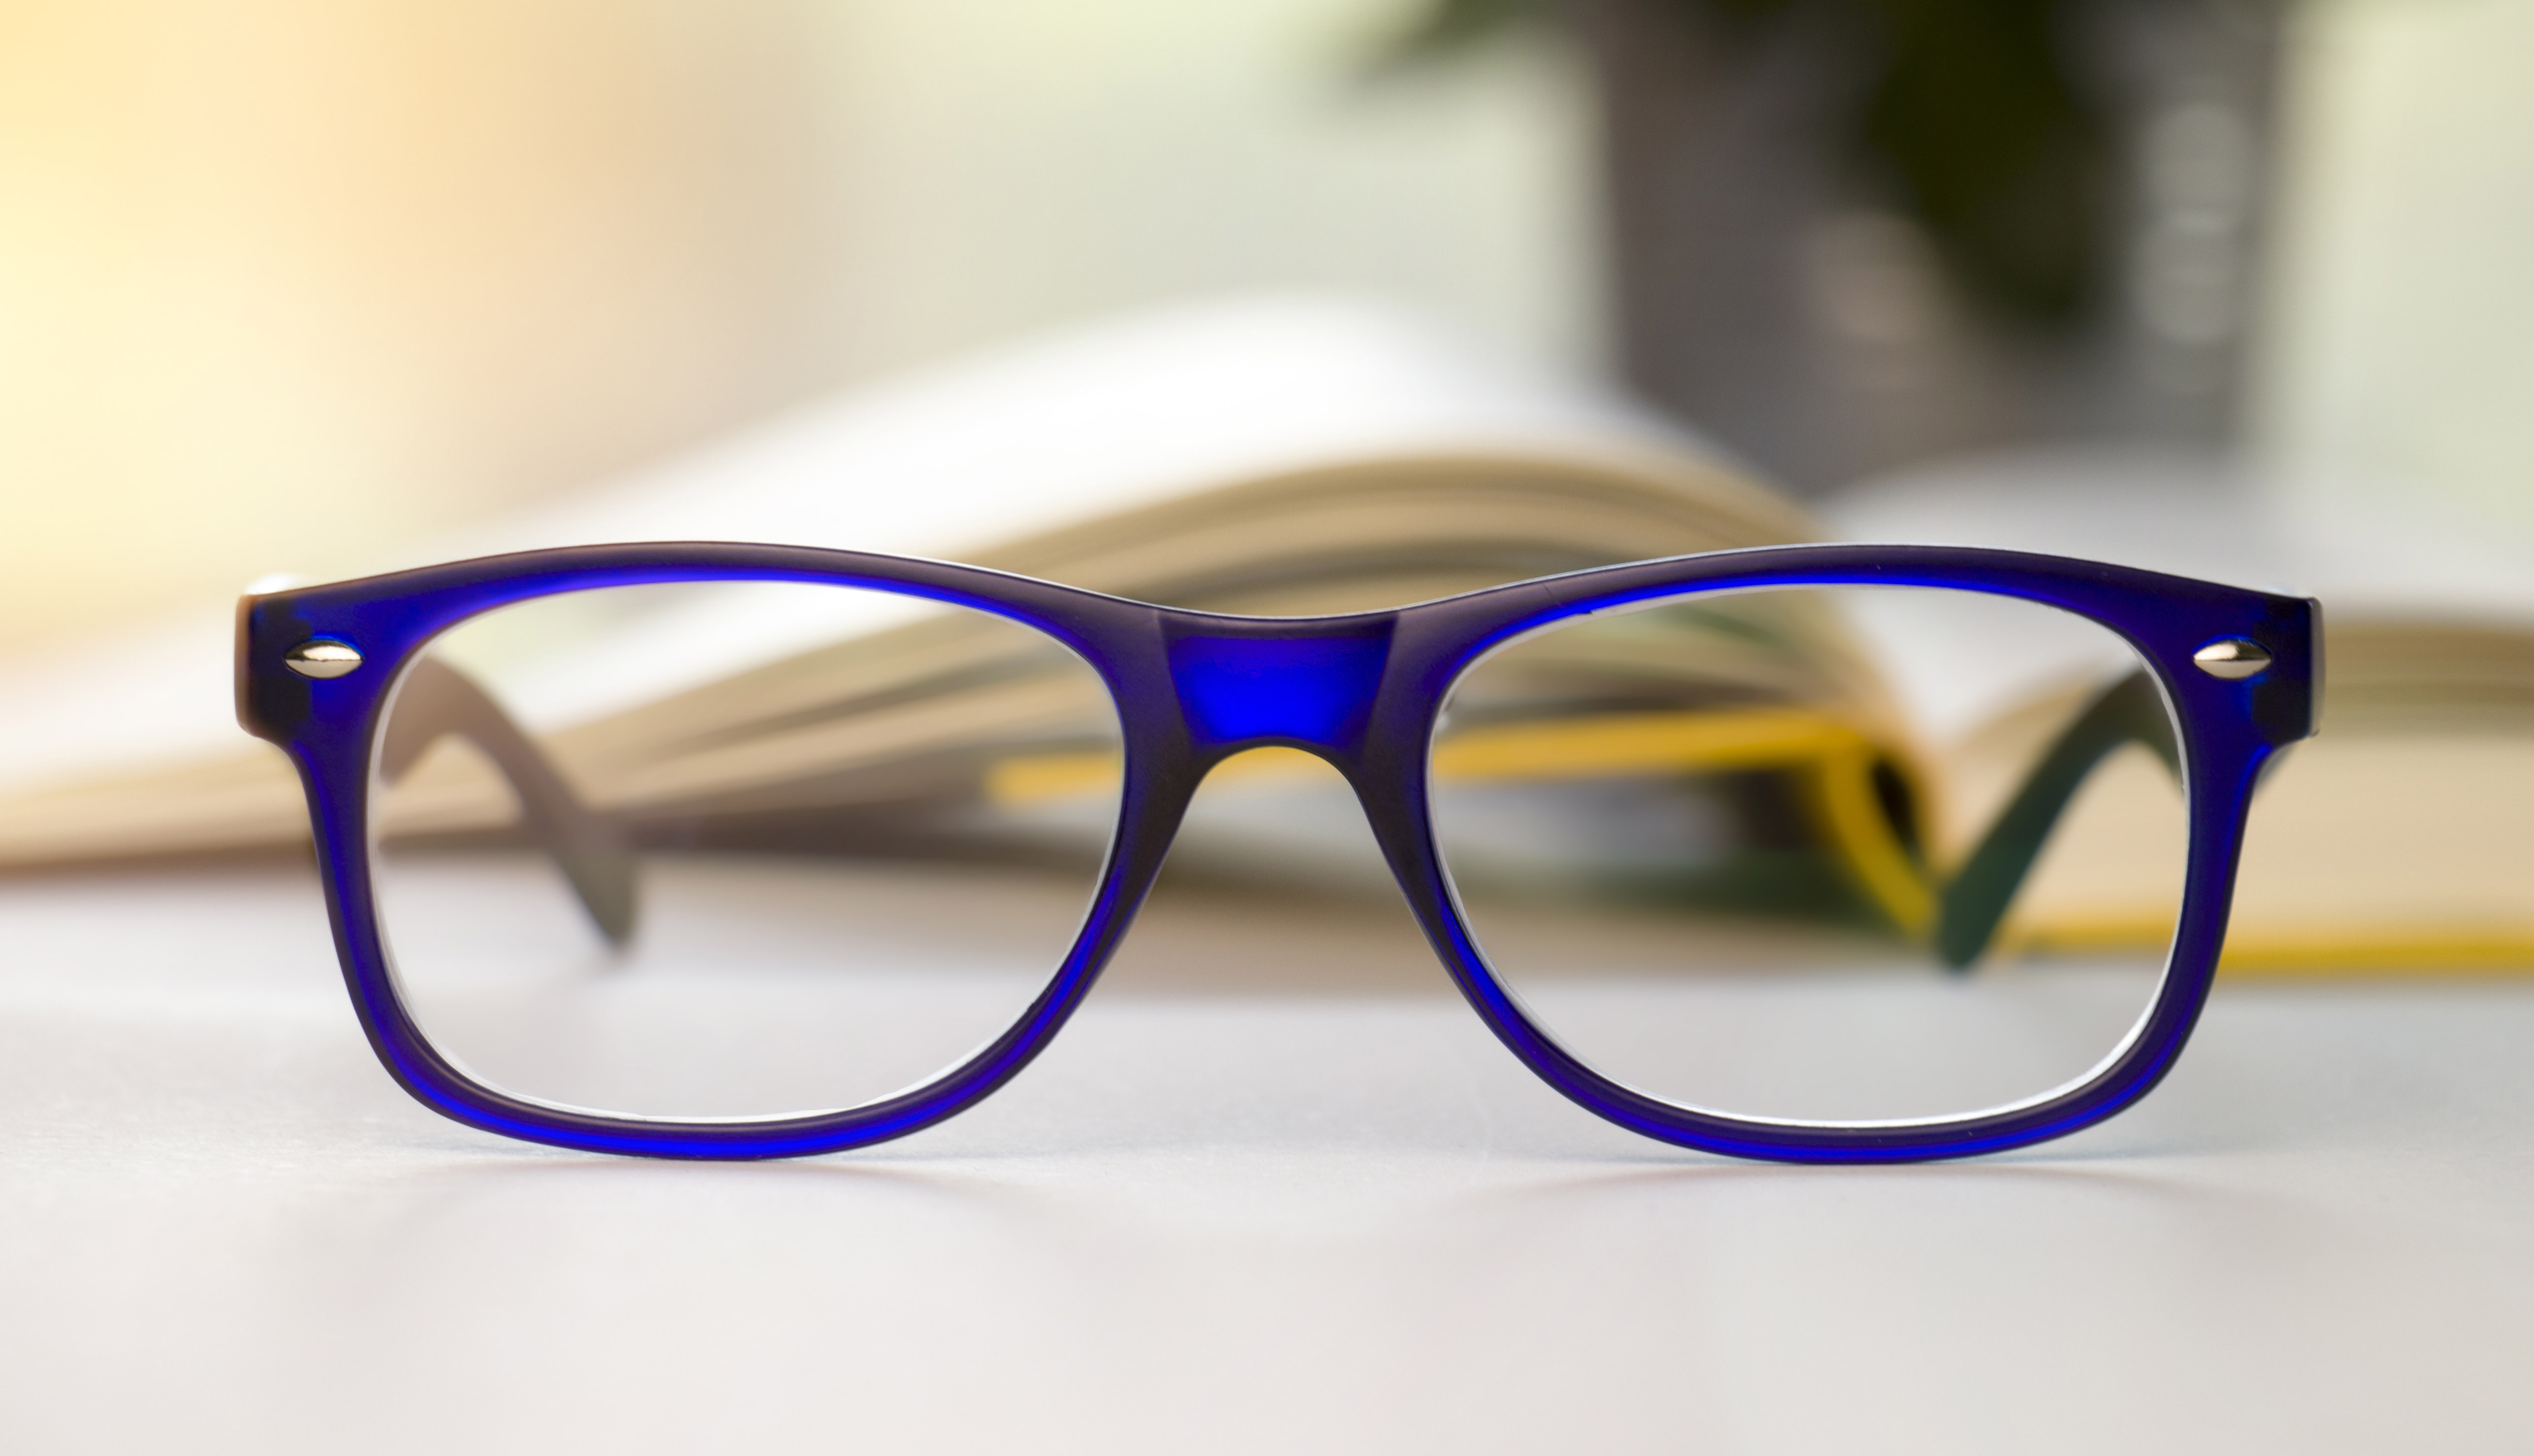 f2e94632d1c1 Stylish blue glasses on a blur background. Getty Images. As reading ...